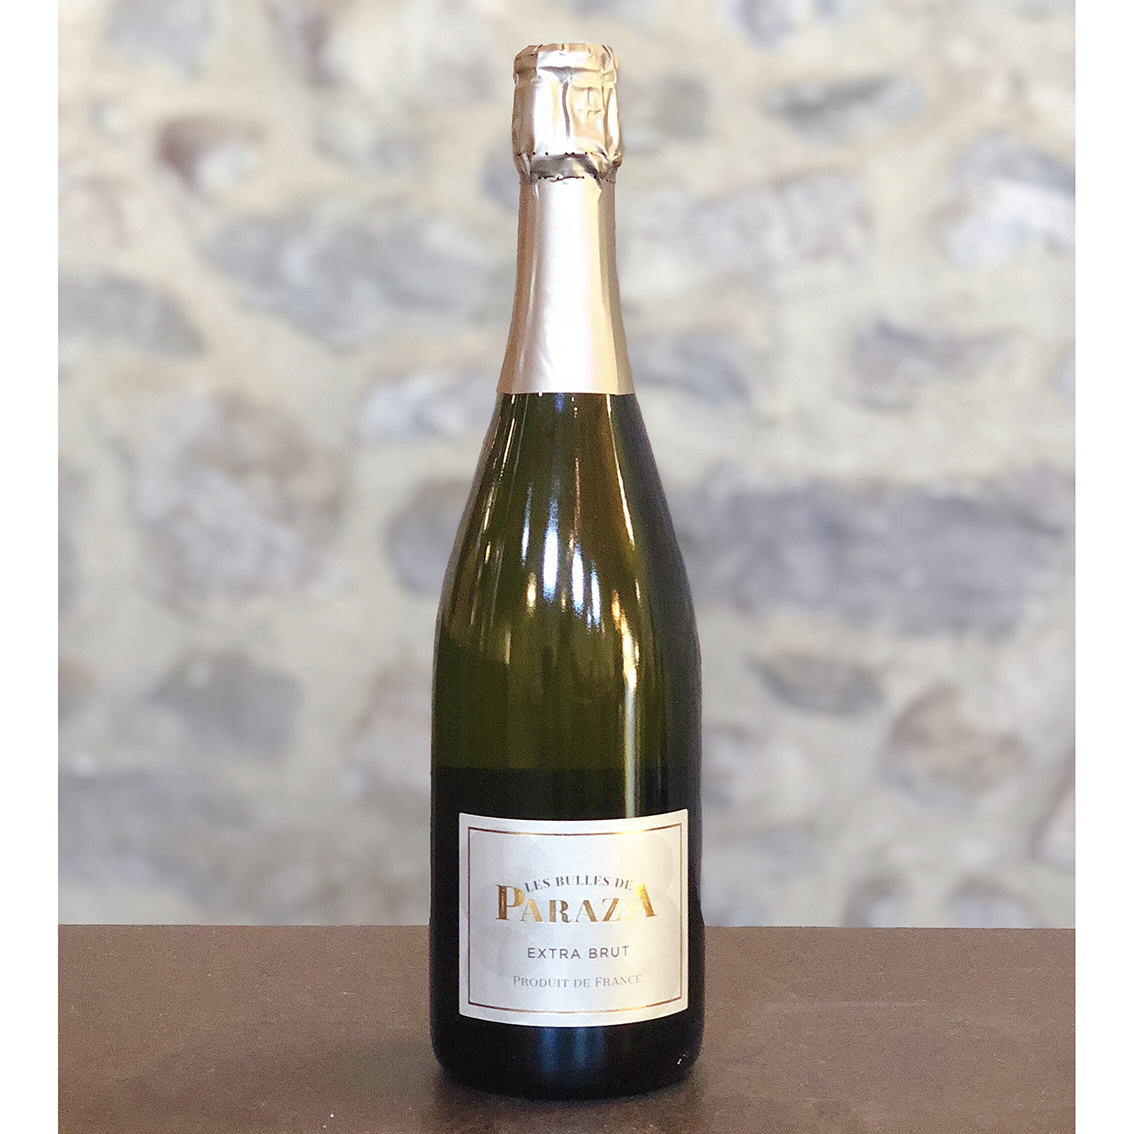 Les Bulles de Paraza vin du Chateau de Paraza great sparkling wine from France